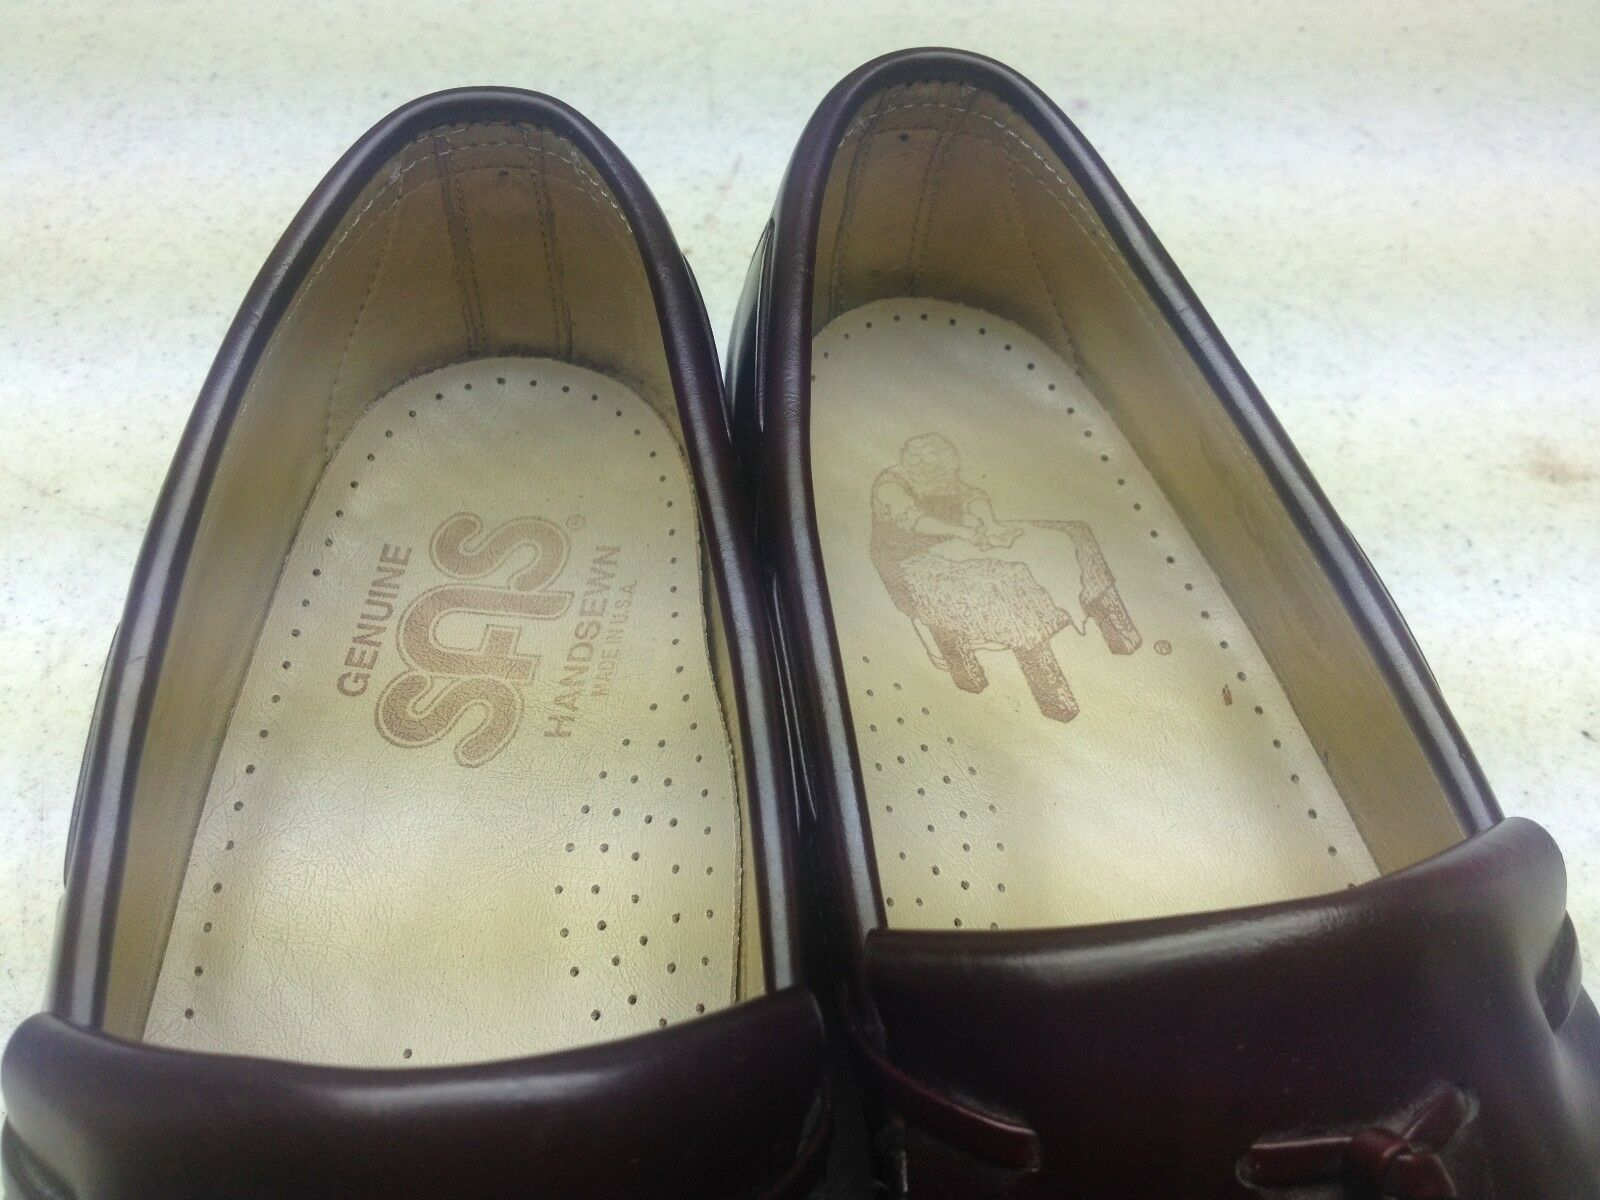 SAS MADE IN USA BURGUNDY LEATHER 8.5 SLIP ON POWER DRIVING SATURDAY SHOES 8.5 LEATHER D 1f775d